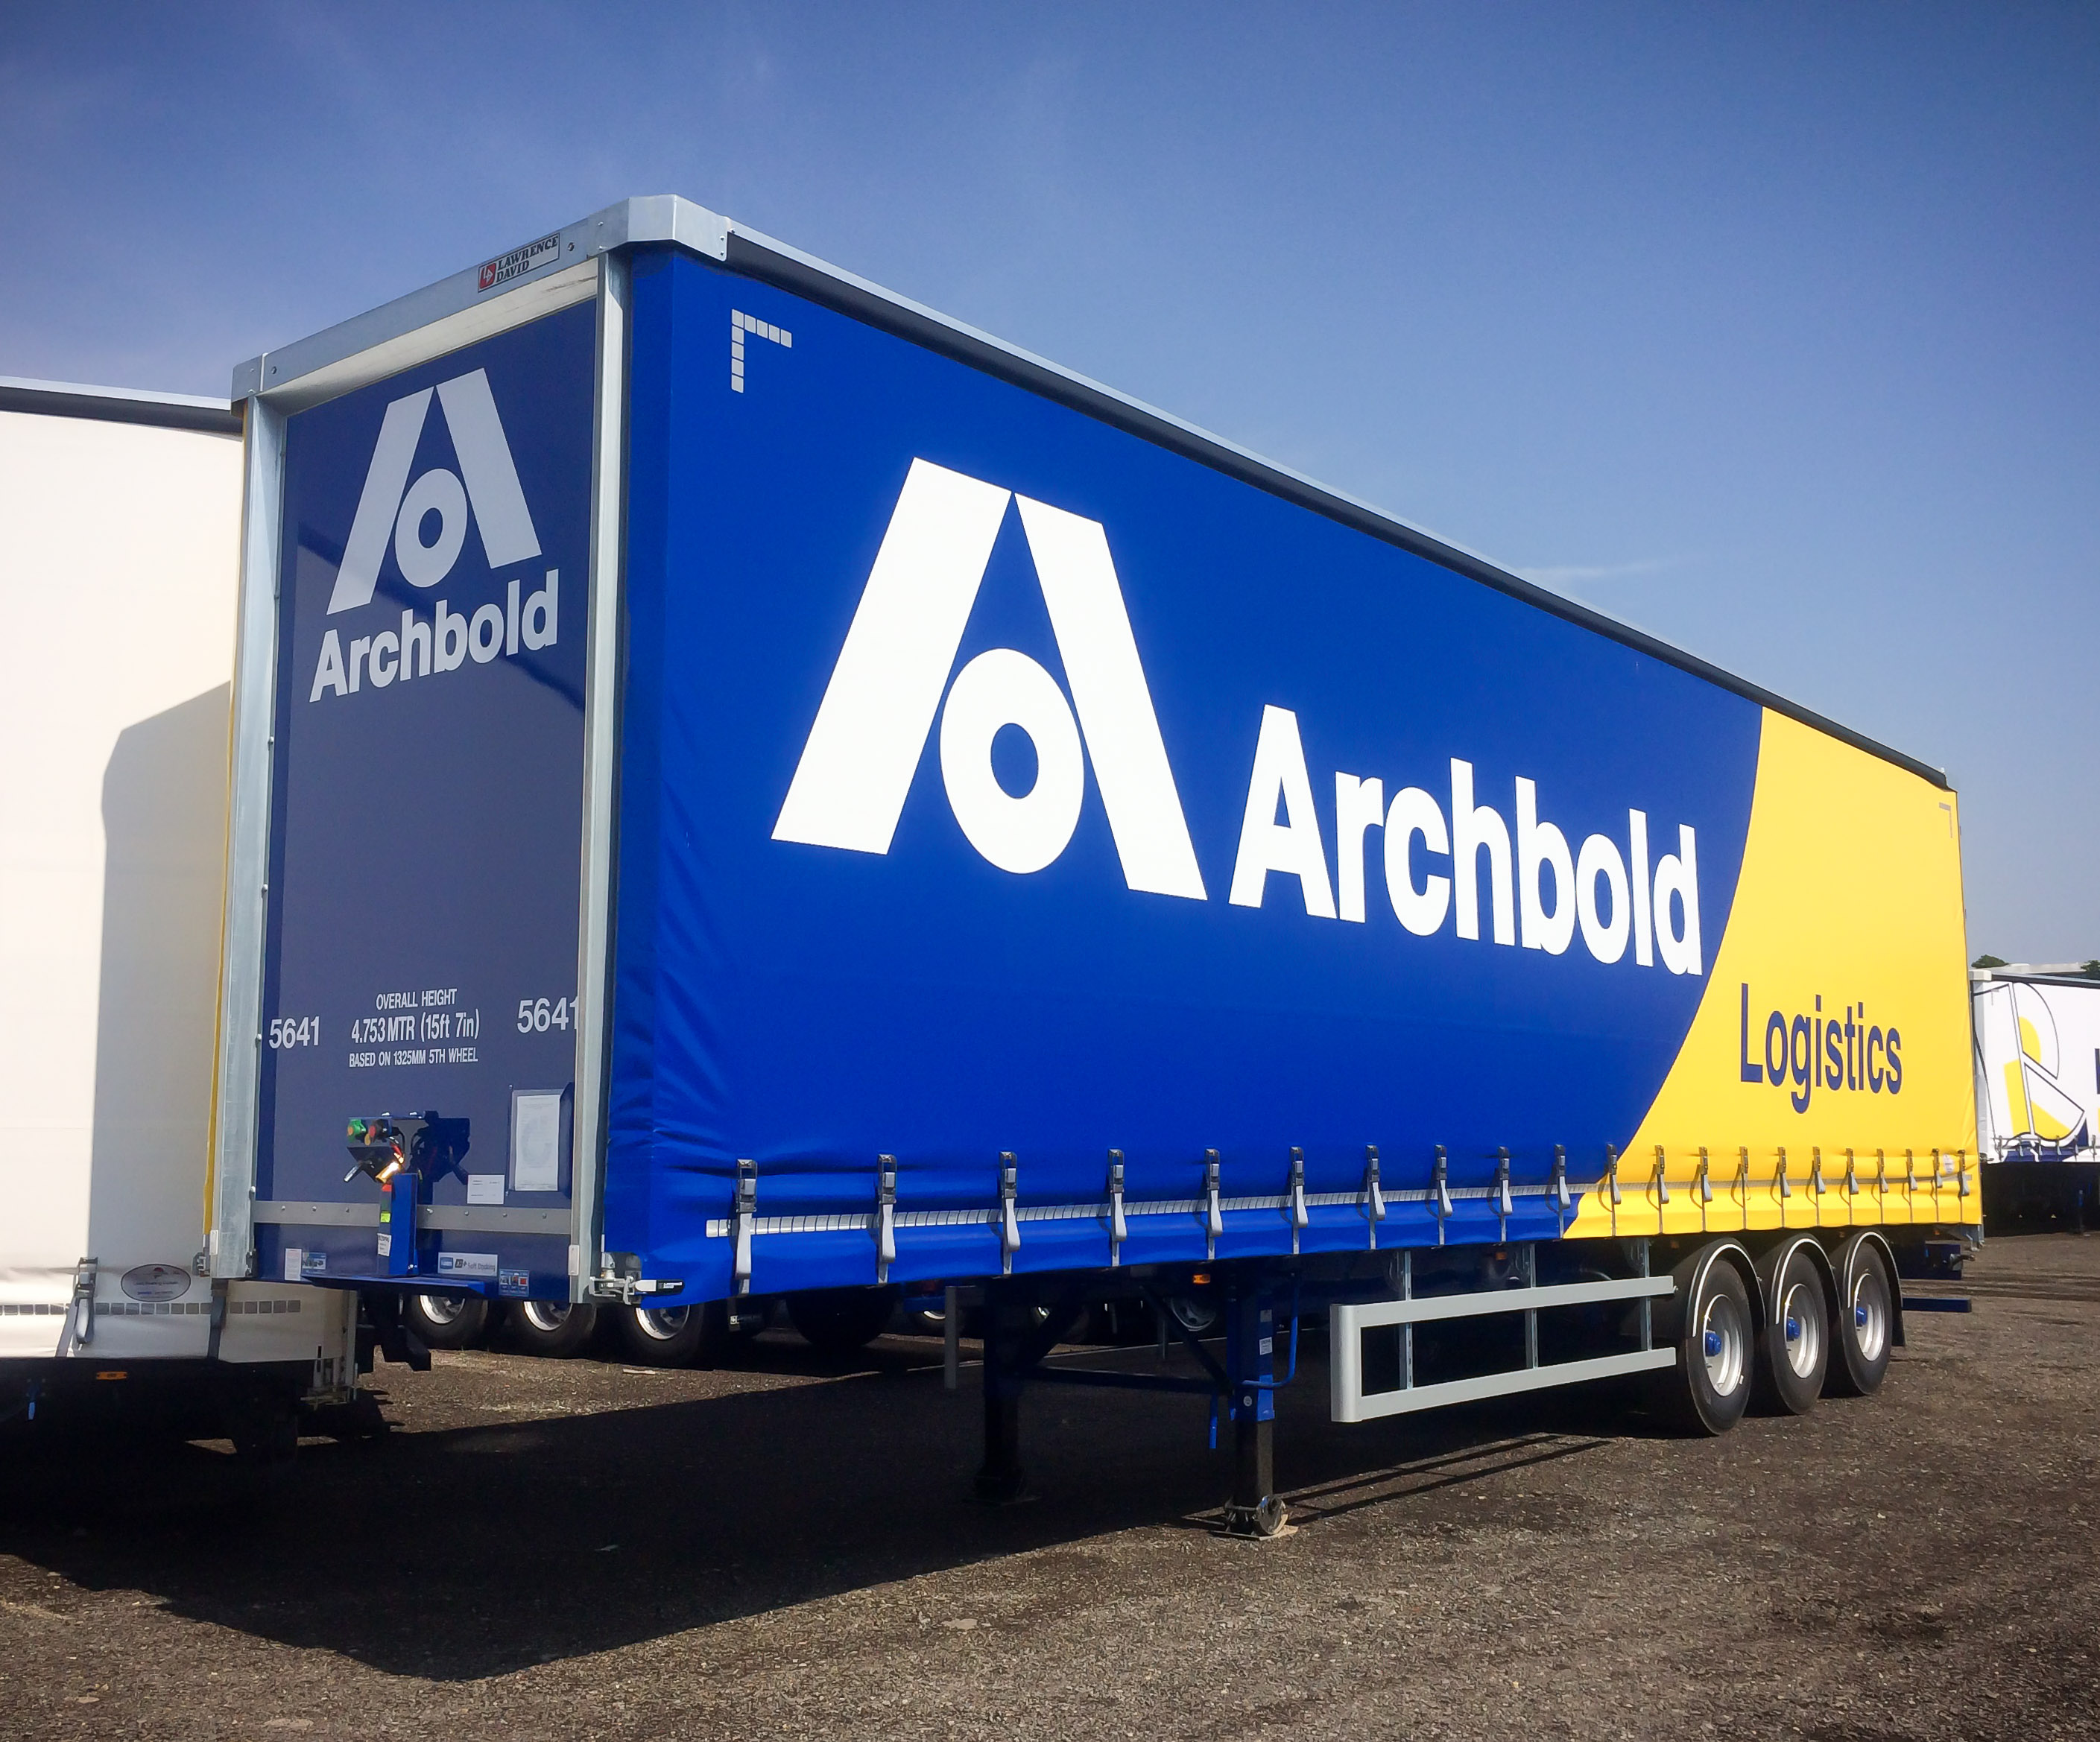 Archbold_Logistics by InfiniShield